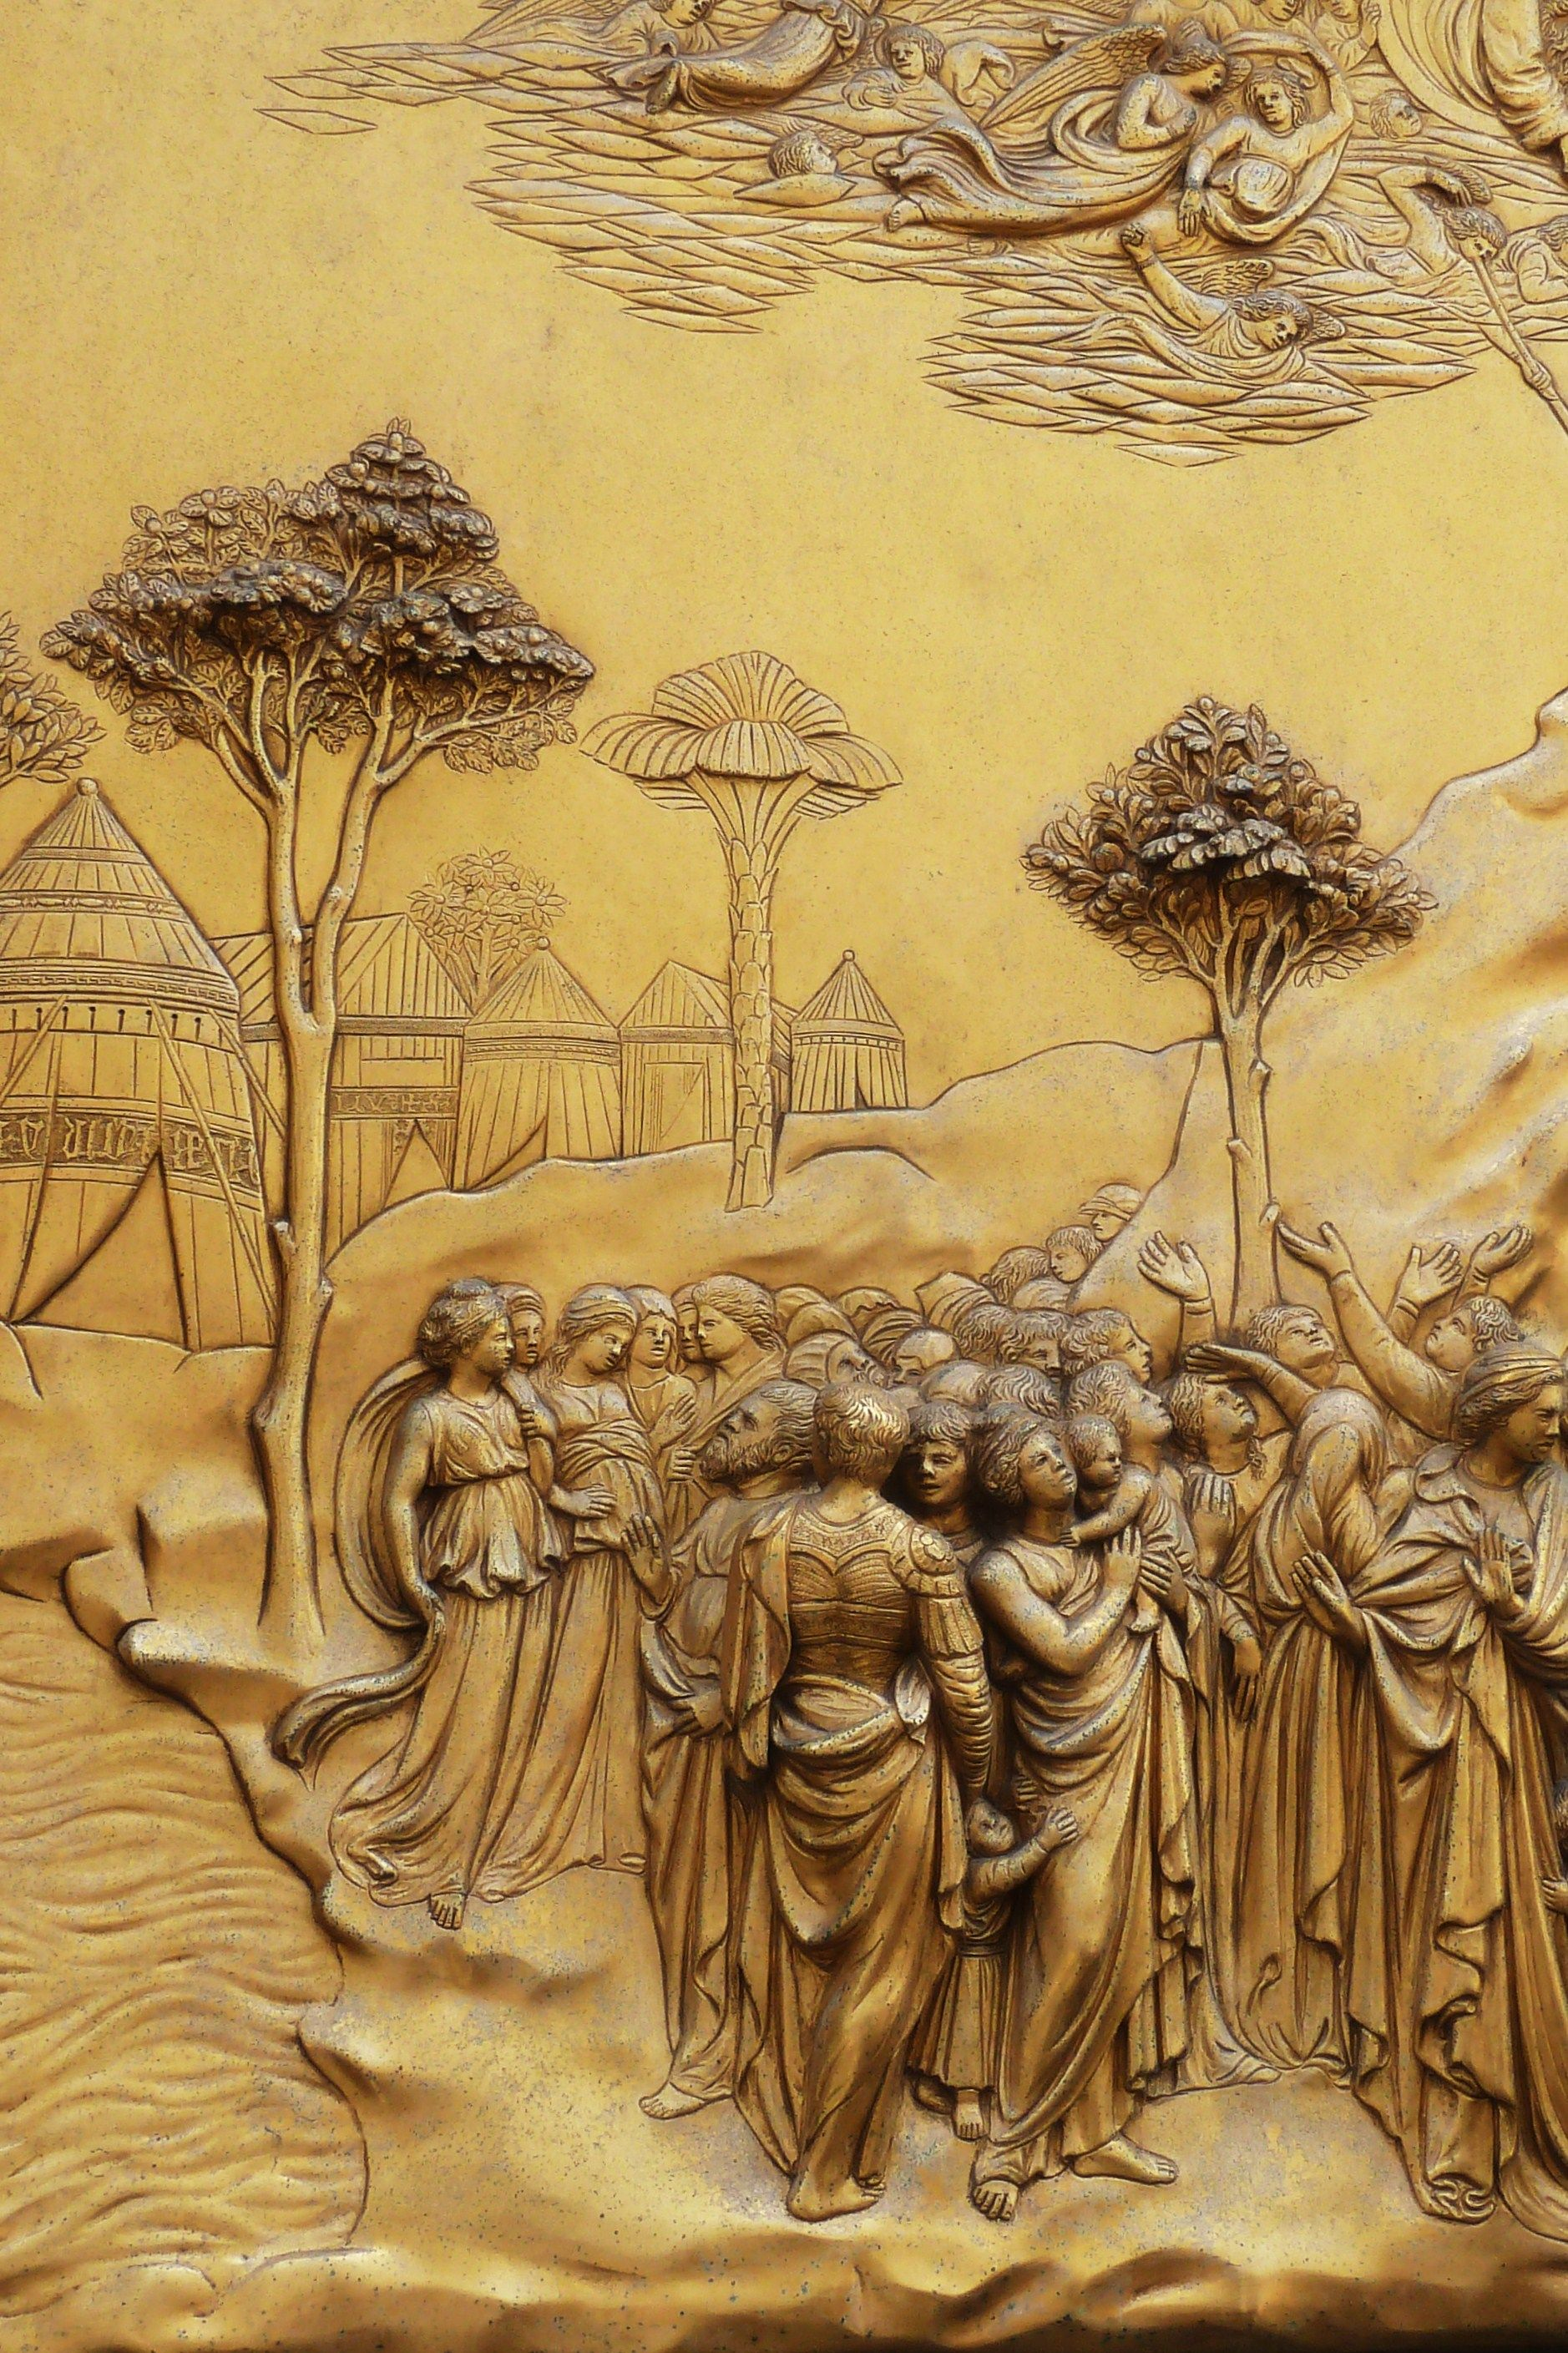 Arte Sacro Pintura Y Escultura Close Up Of Ghiberti 39s Doors Of Paradise Florence Italy